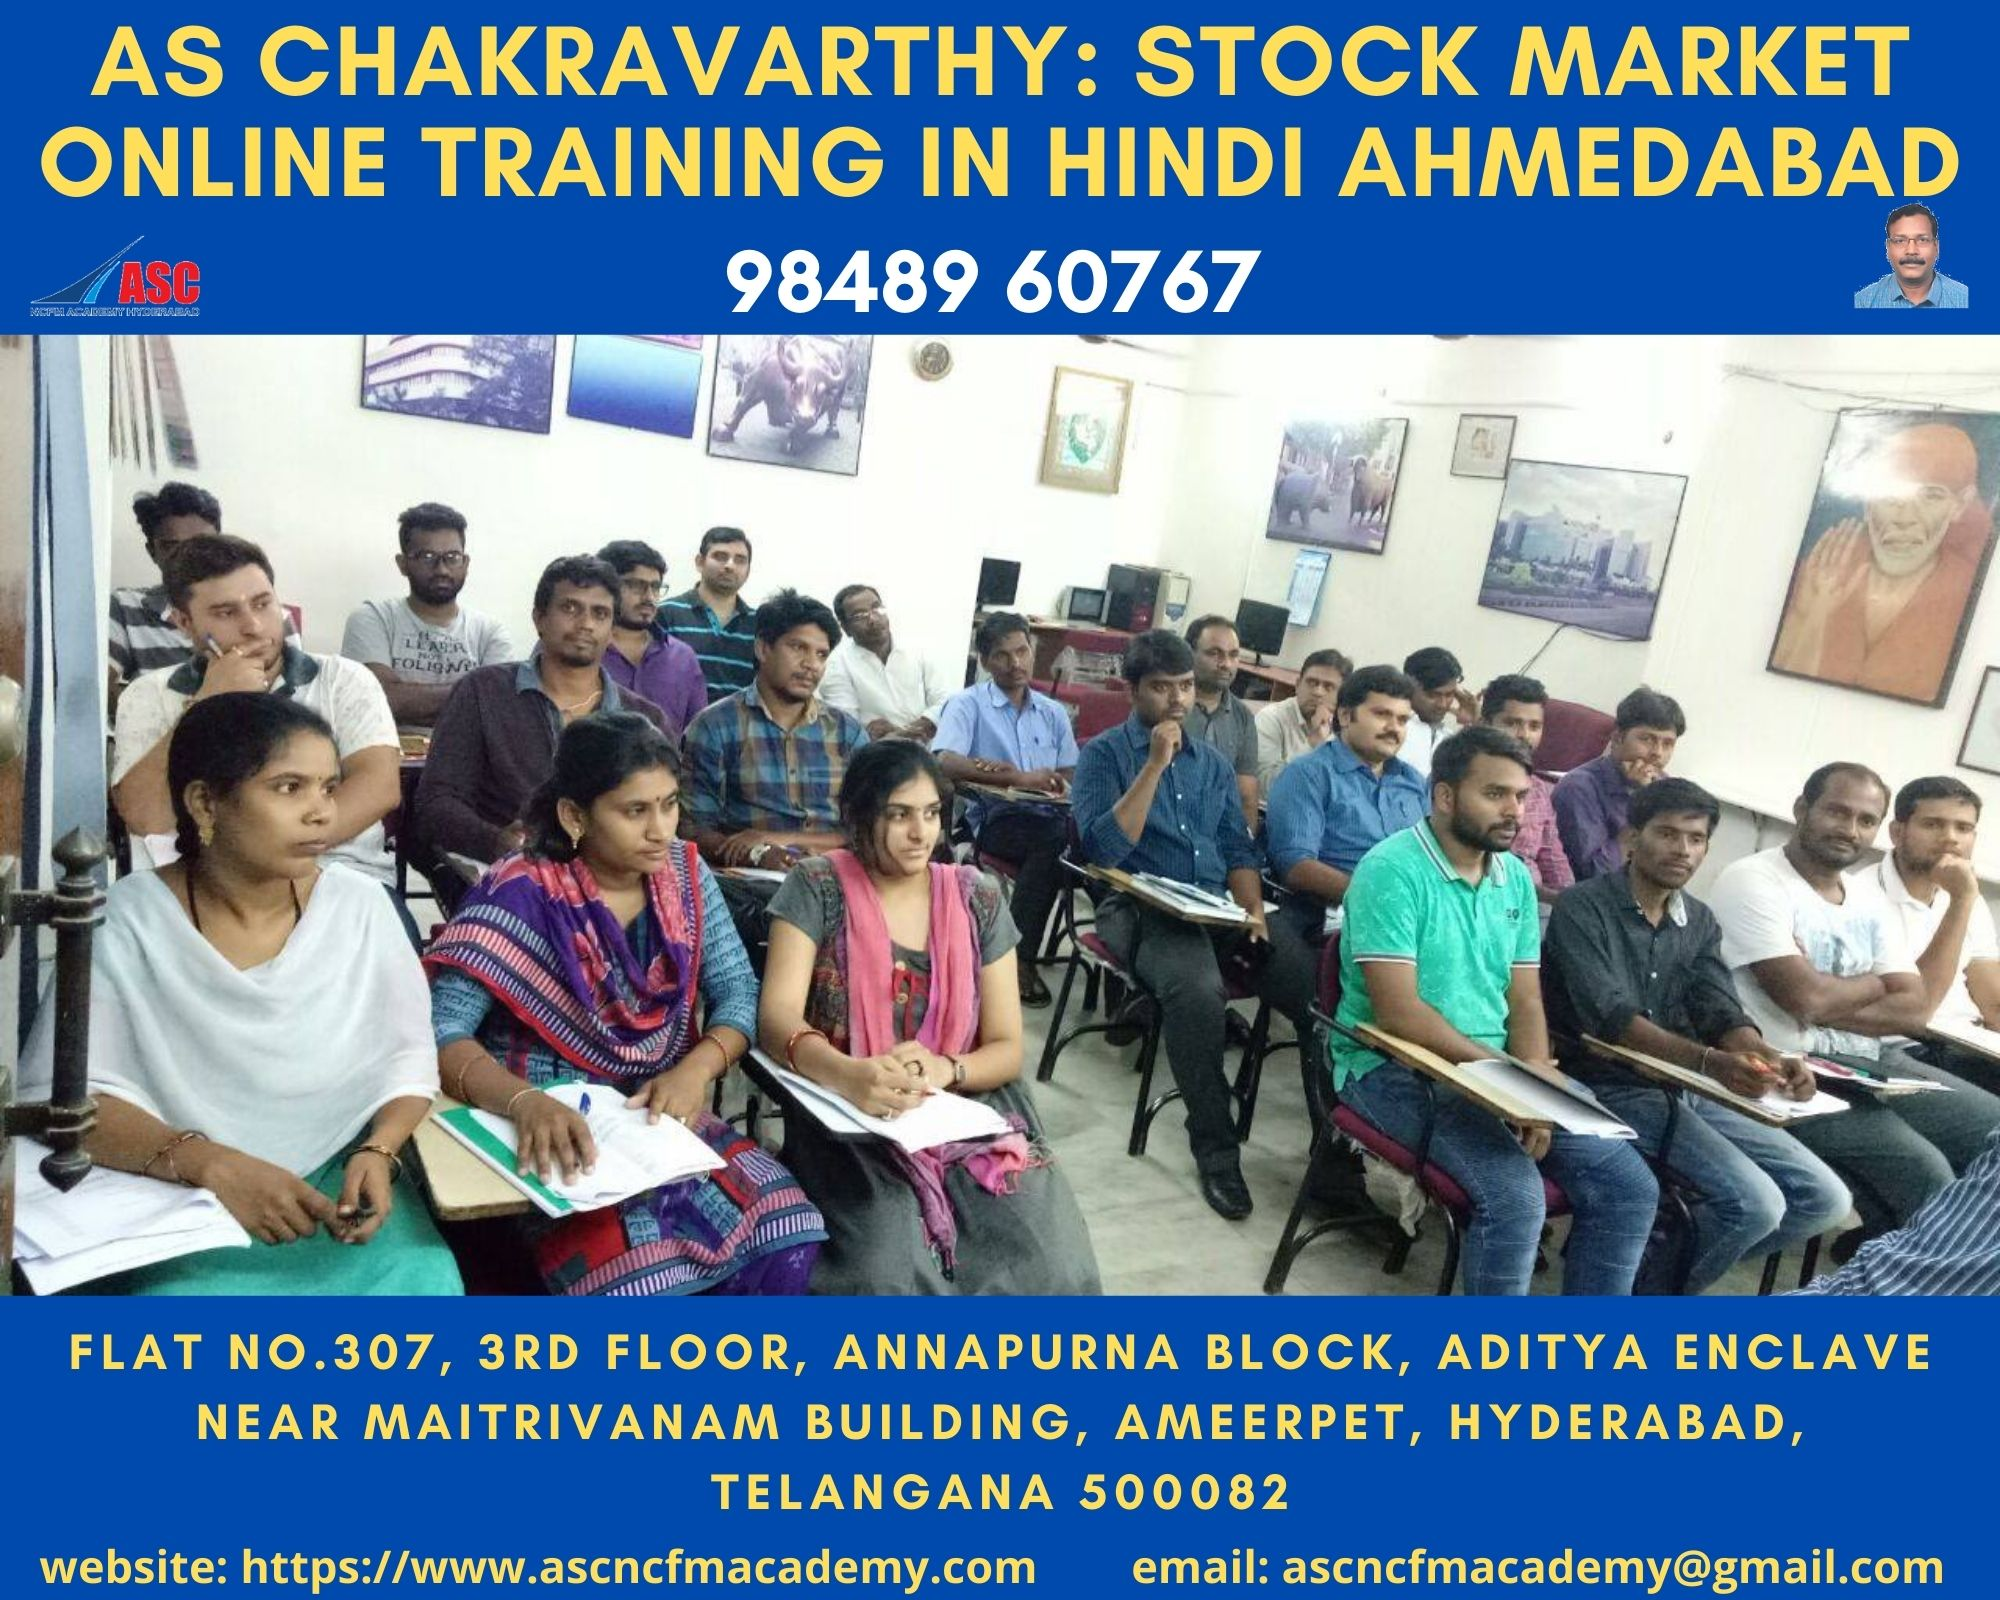 Online Stock Market Technical Training in Hindi Ahmedabad